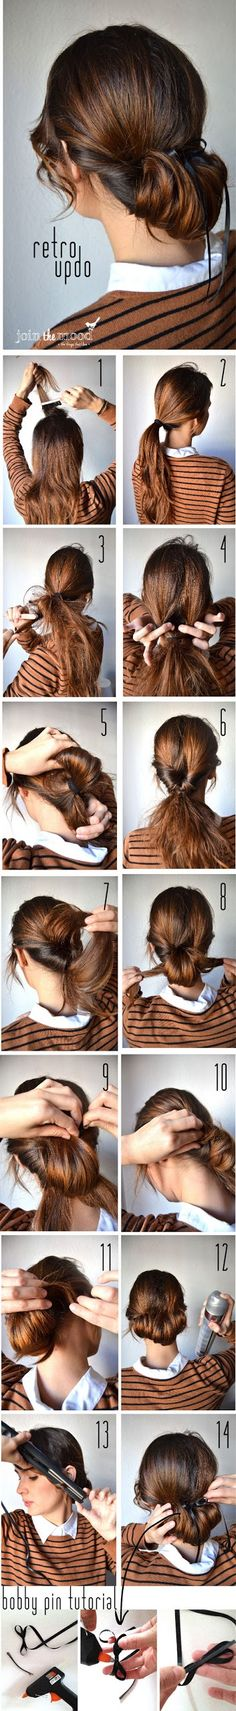 hairstyles tutorial: Make A Retro UpDo